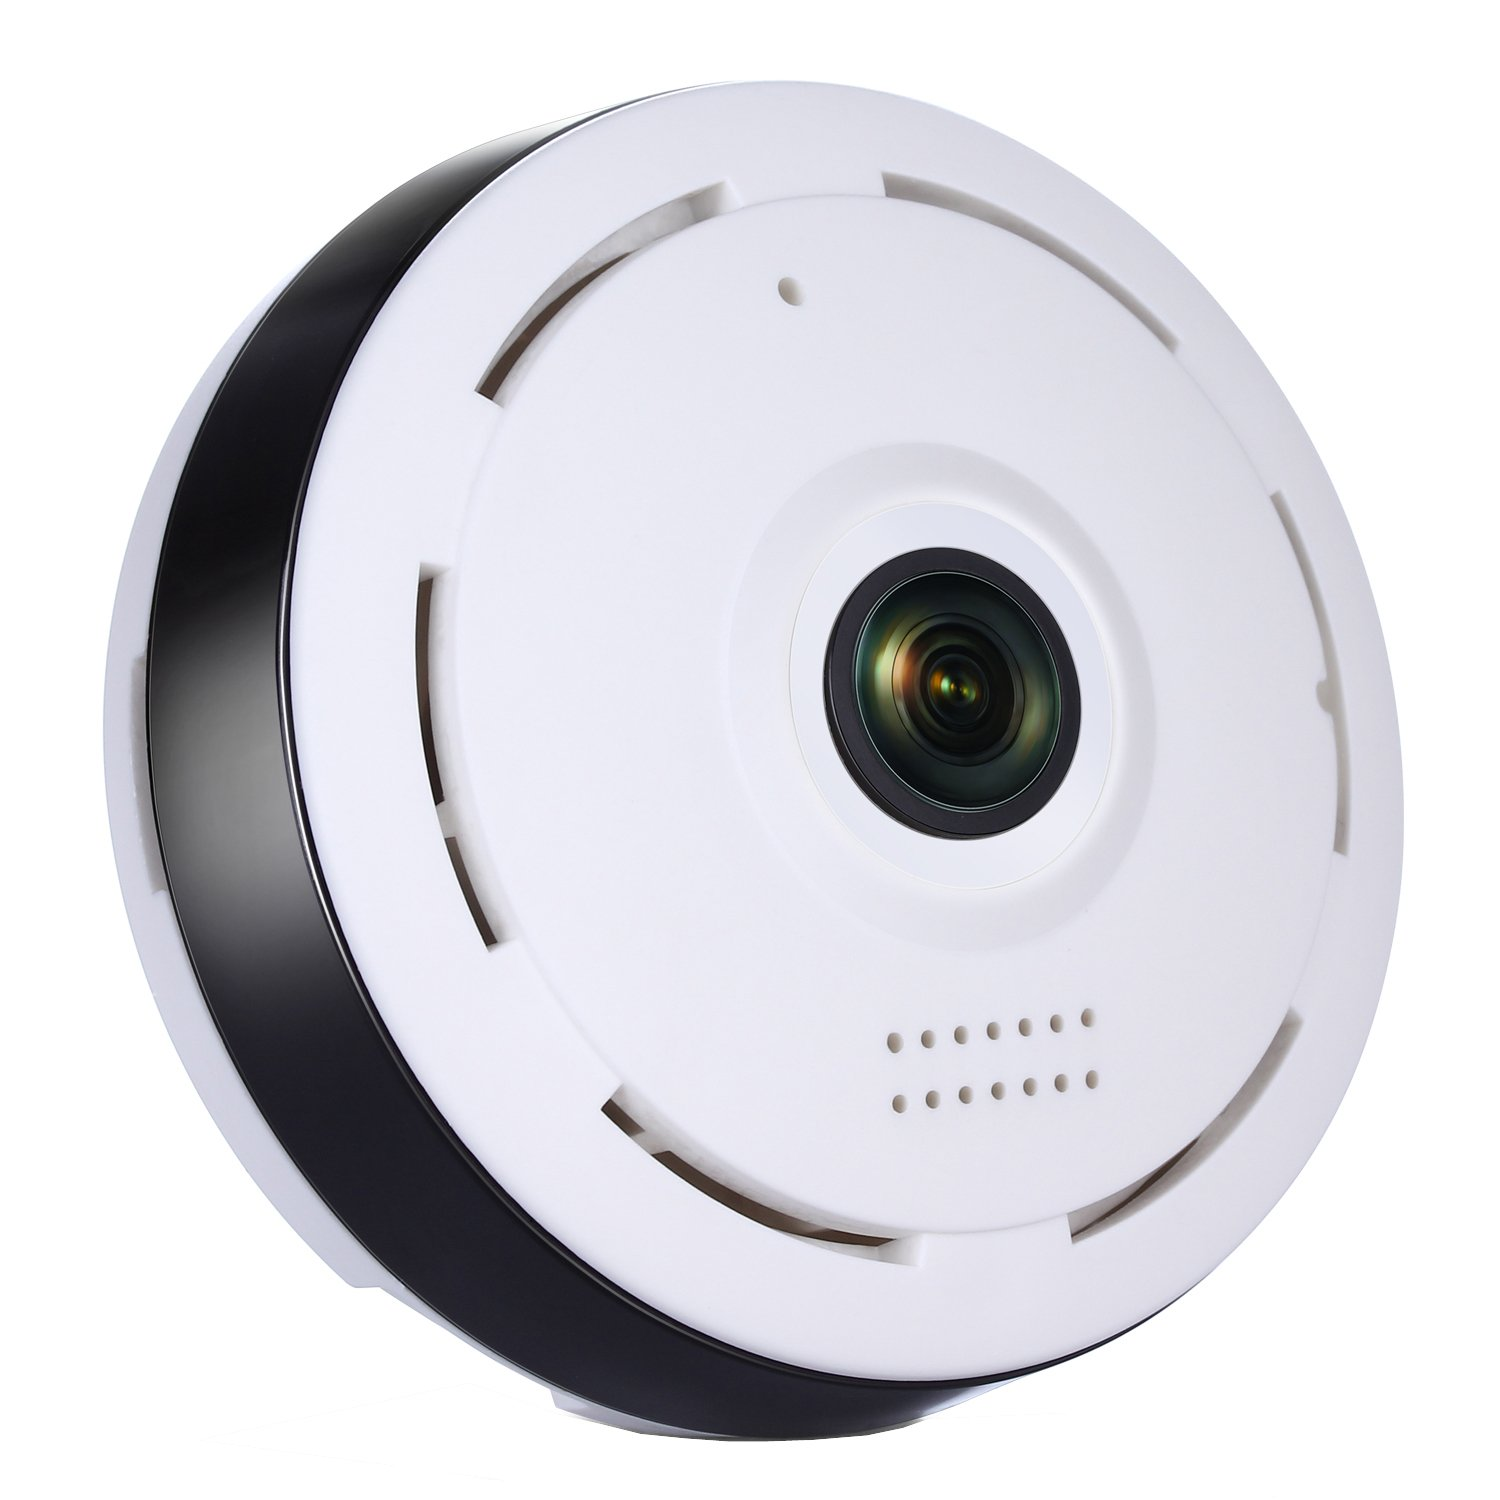 Veoker IP Camera Wireless Wifi 360 Degree Panoramic 2 0 Megapixel 1080P  2 4GHZ Security Camera Super Wide Angle Support IR Night Motion Detection  Keep